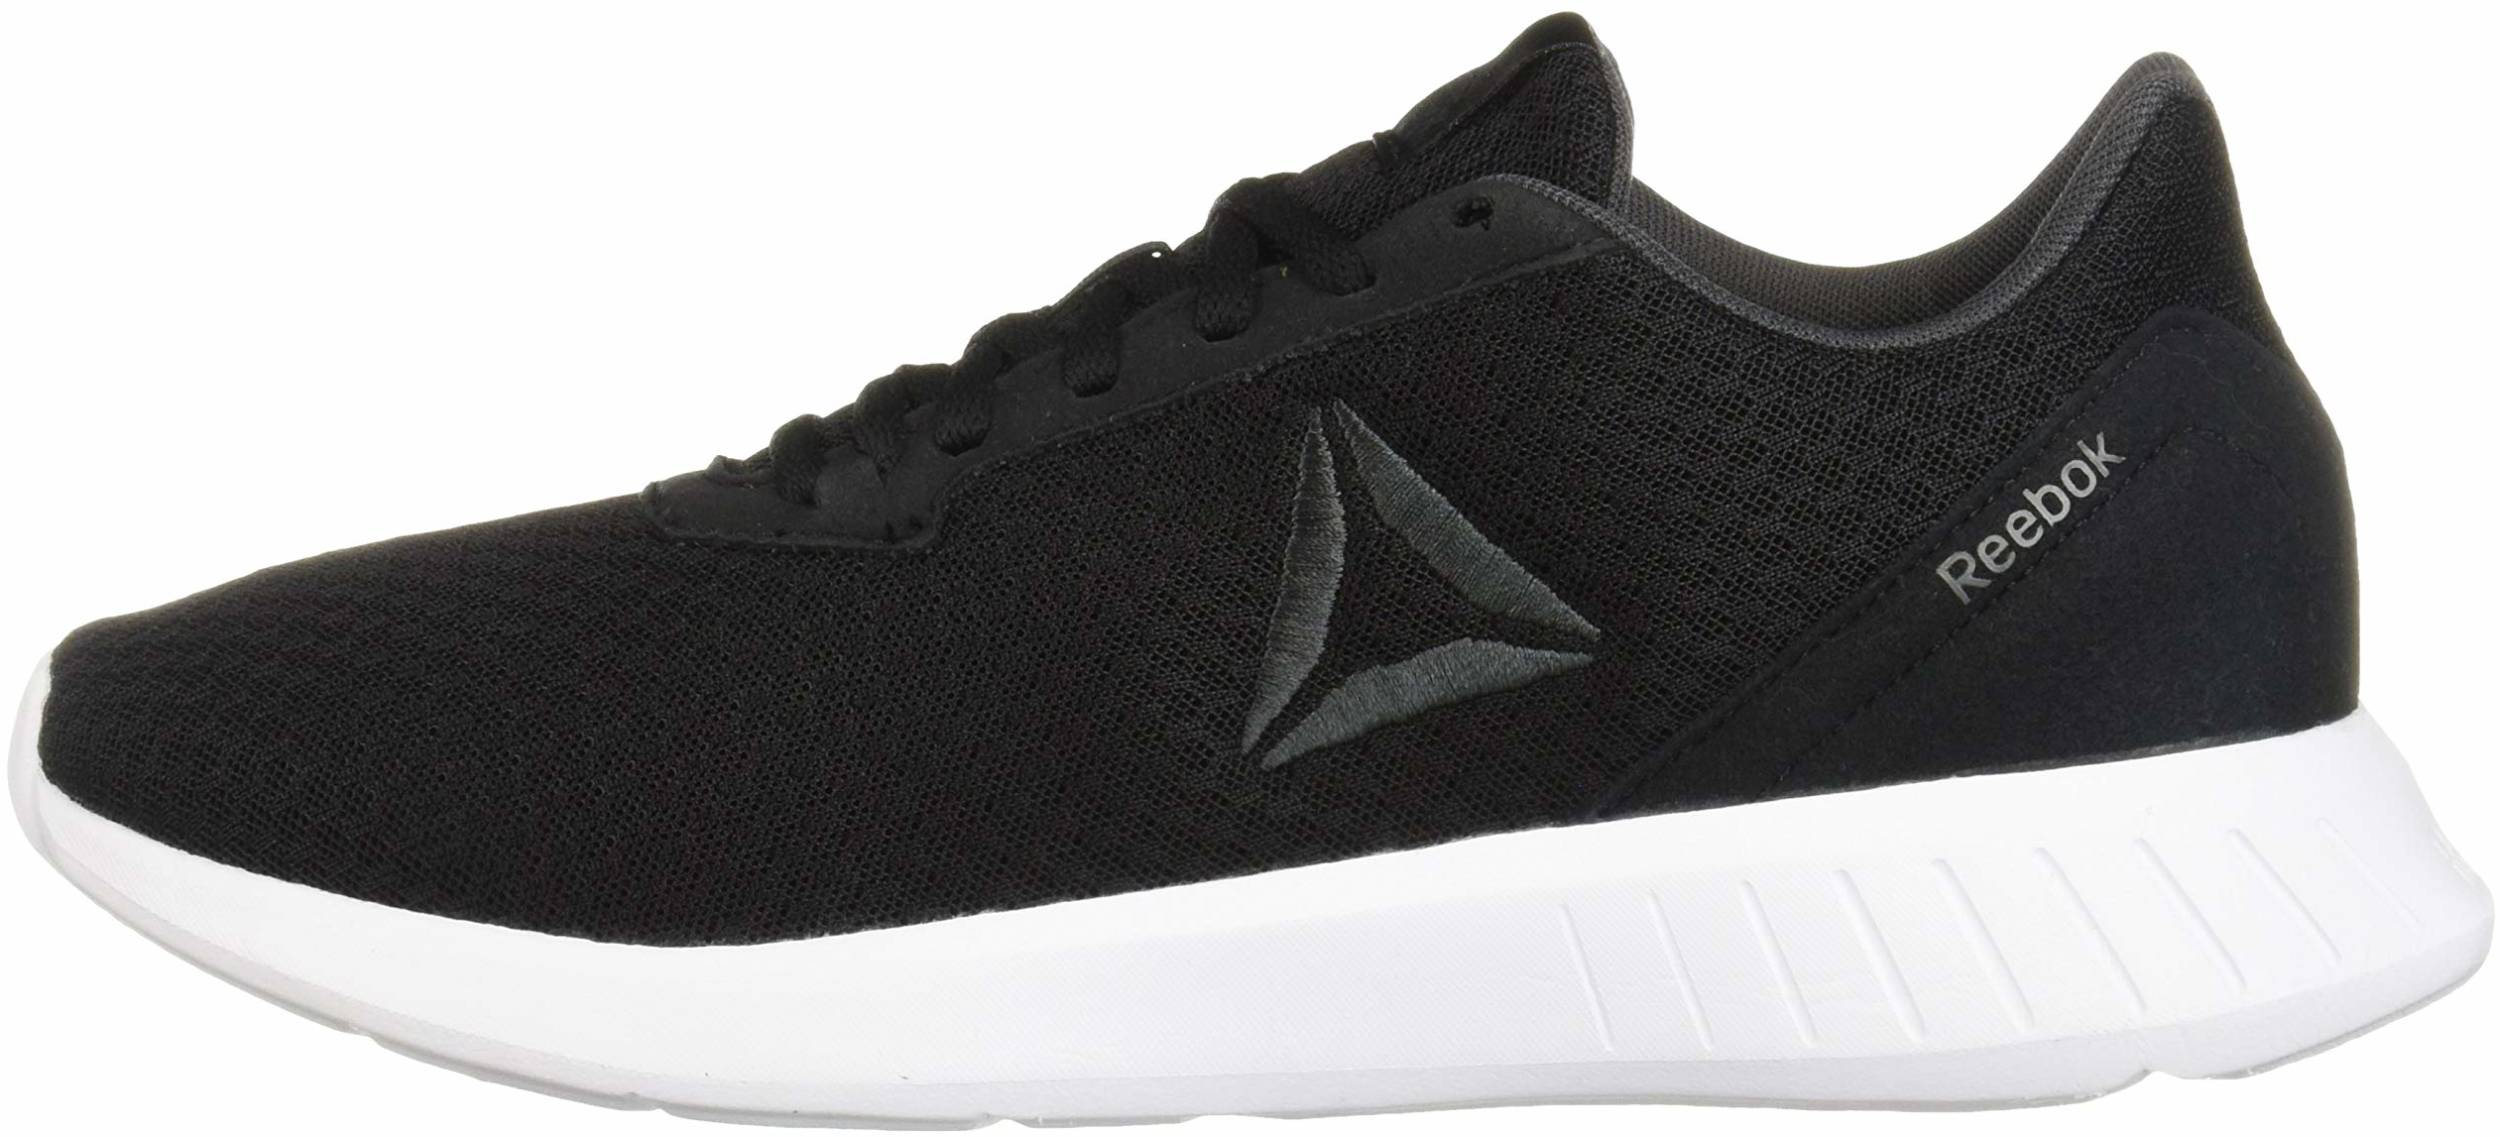 Only $44 + Review of Reebok Lite